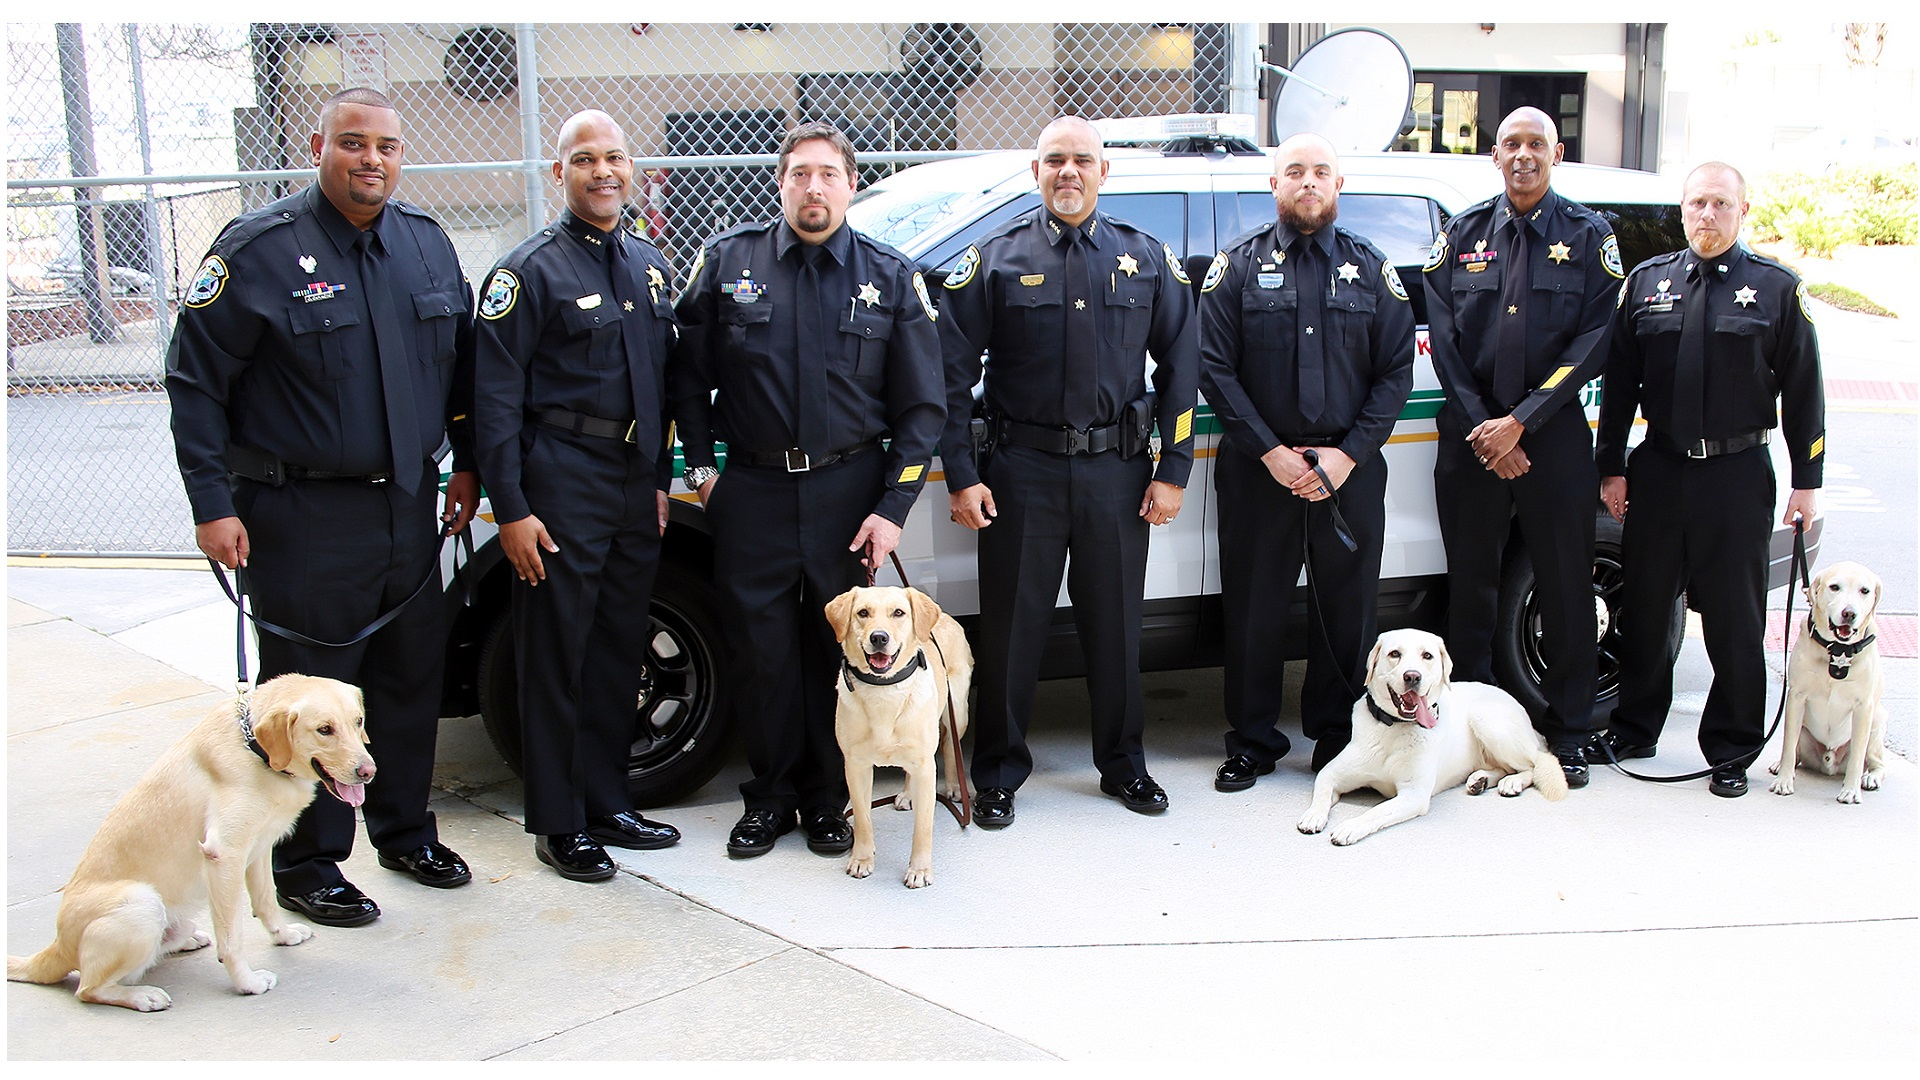 Image of Chief, DC's, and K9's